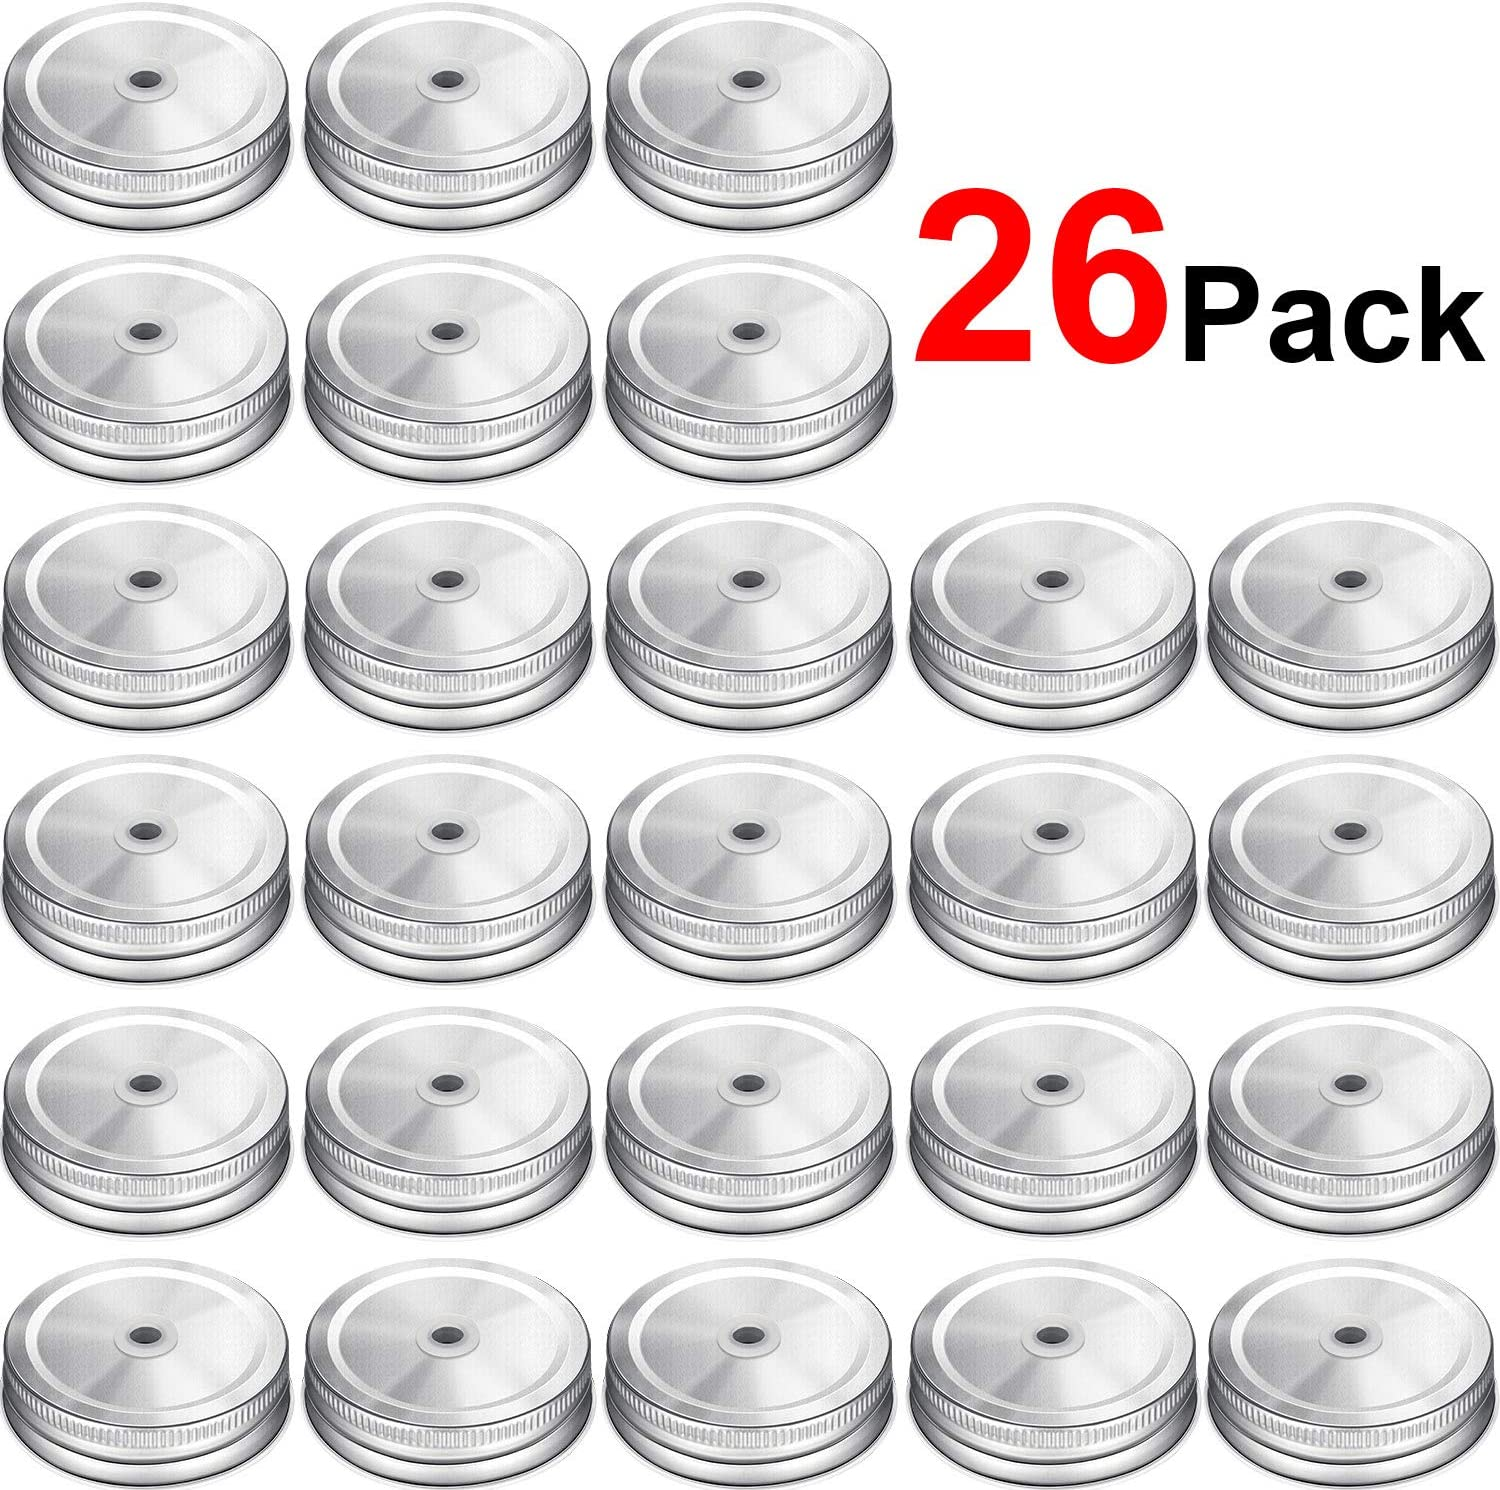 26 Packs Stainless Steel Regular Mouth Mason Silver Jar Lids with Straw Hole Compatible with Mason Jar